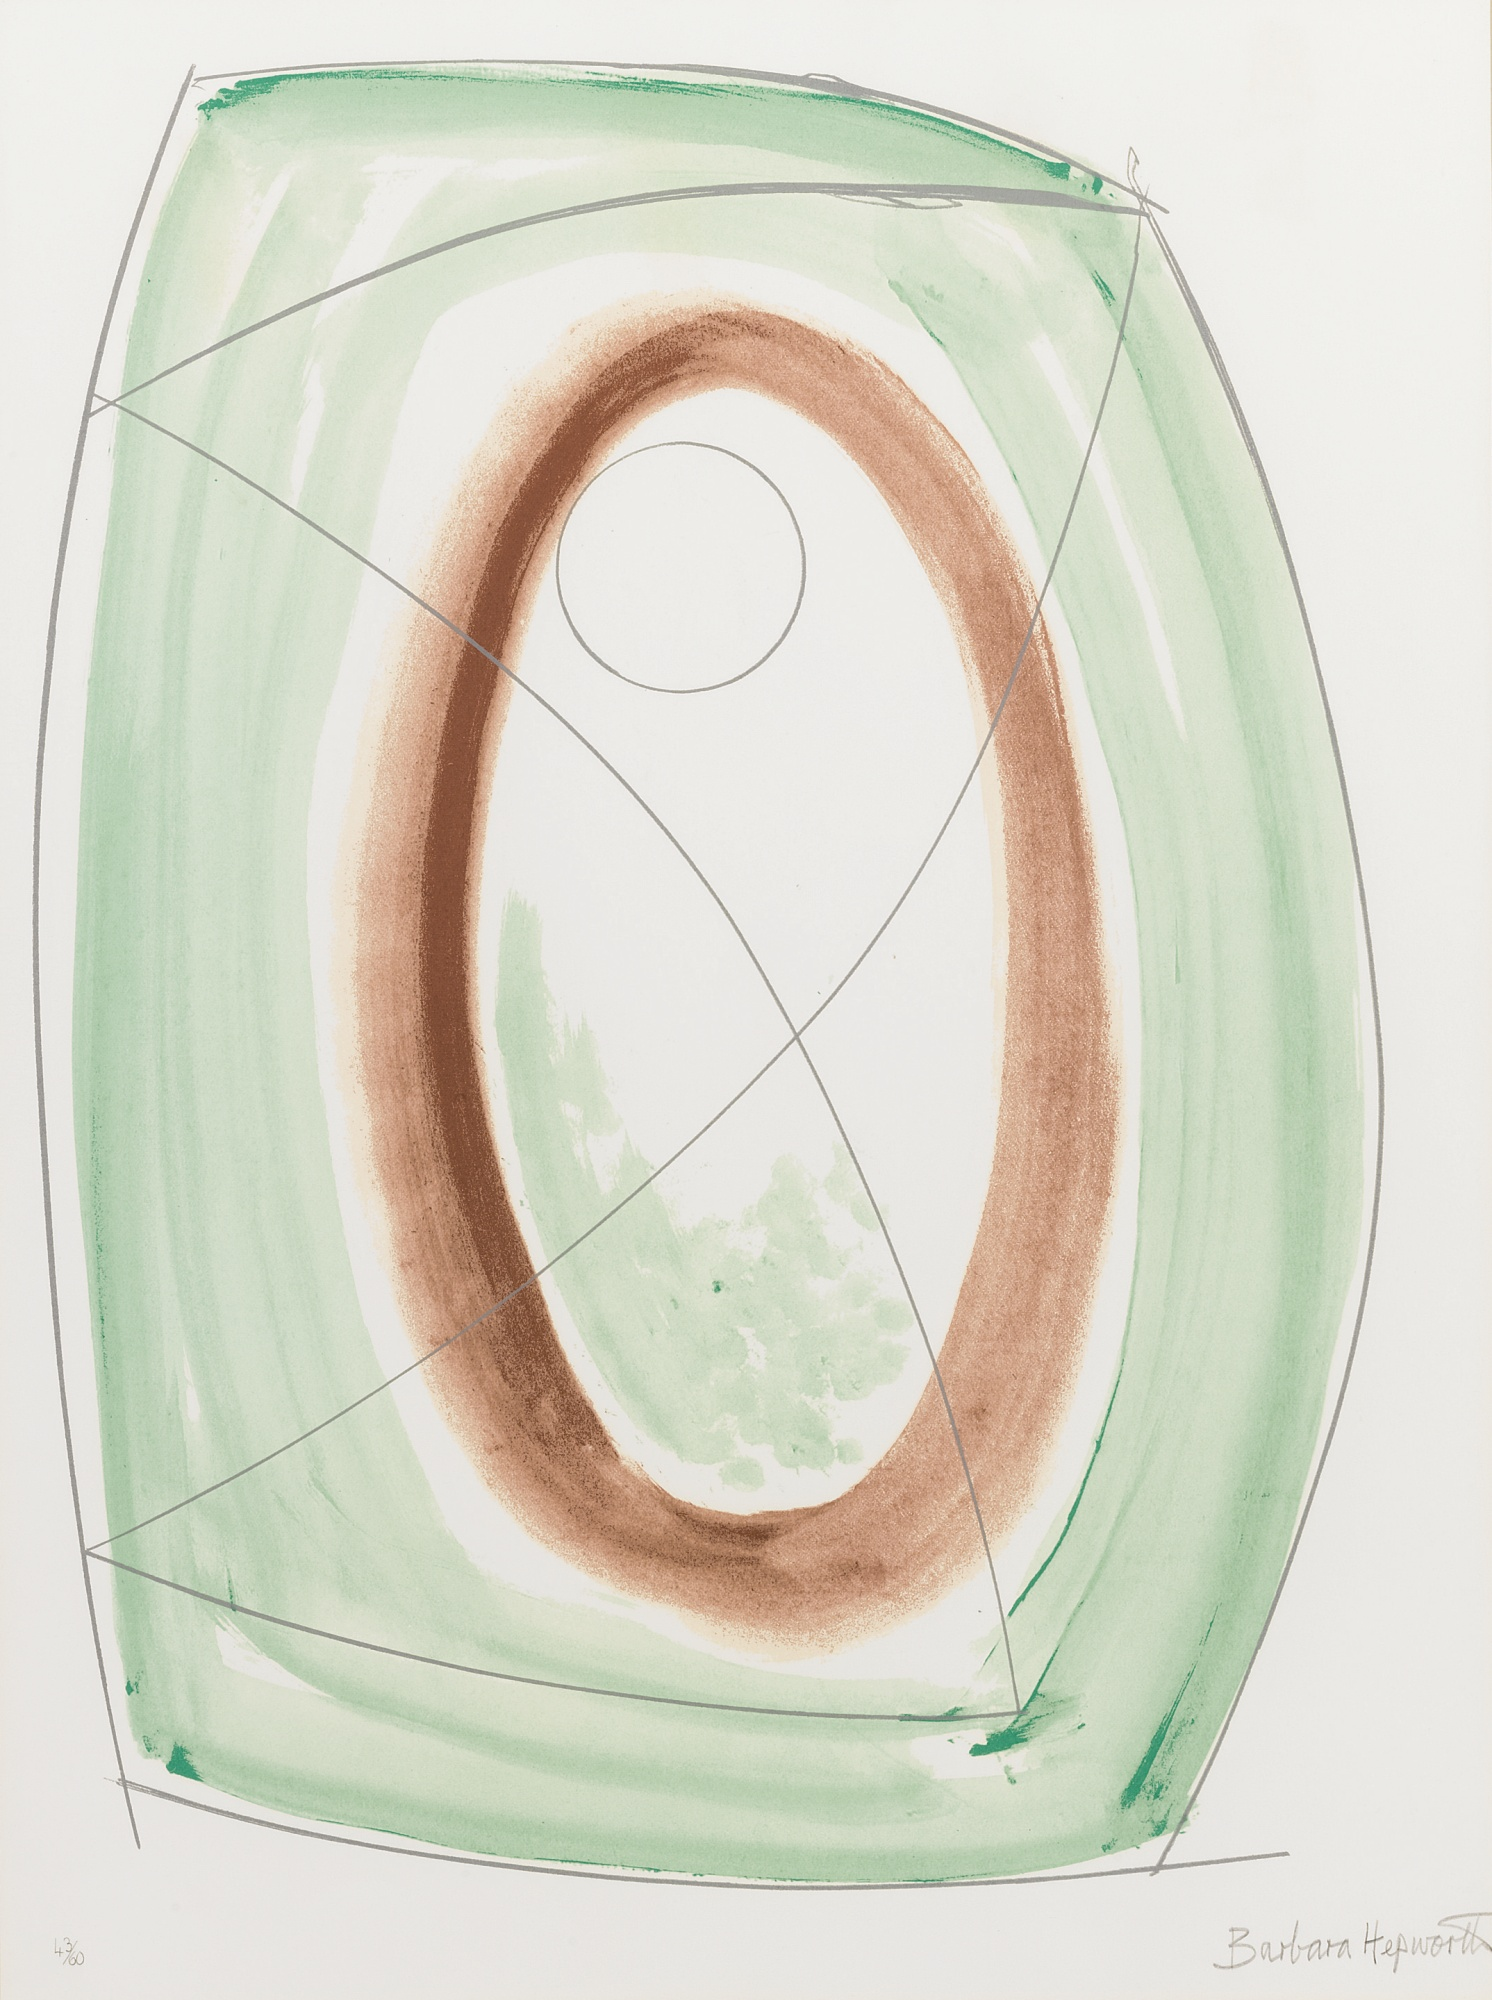 Barbara Hepworth-November Green -1970